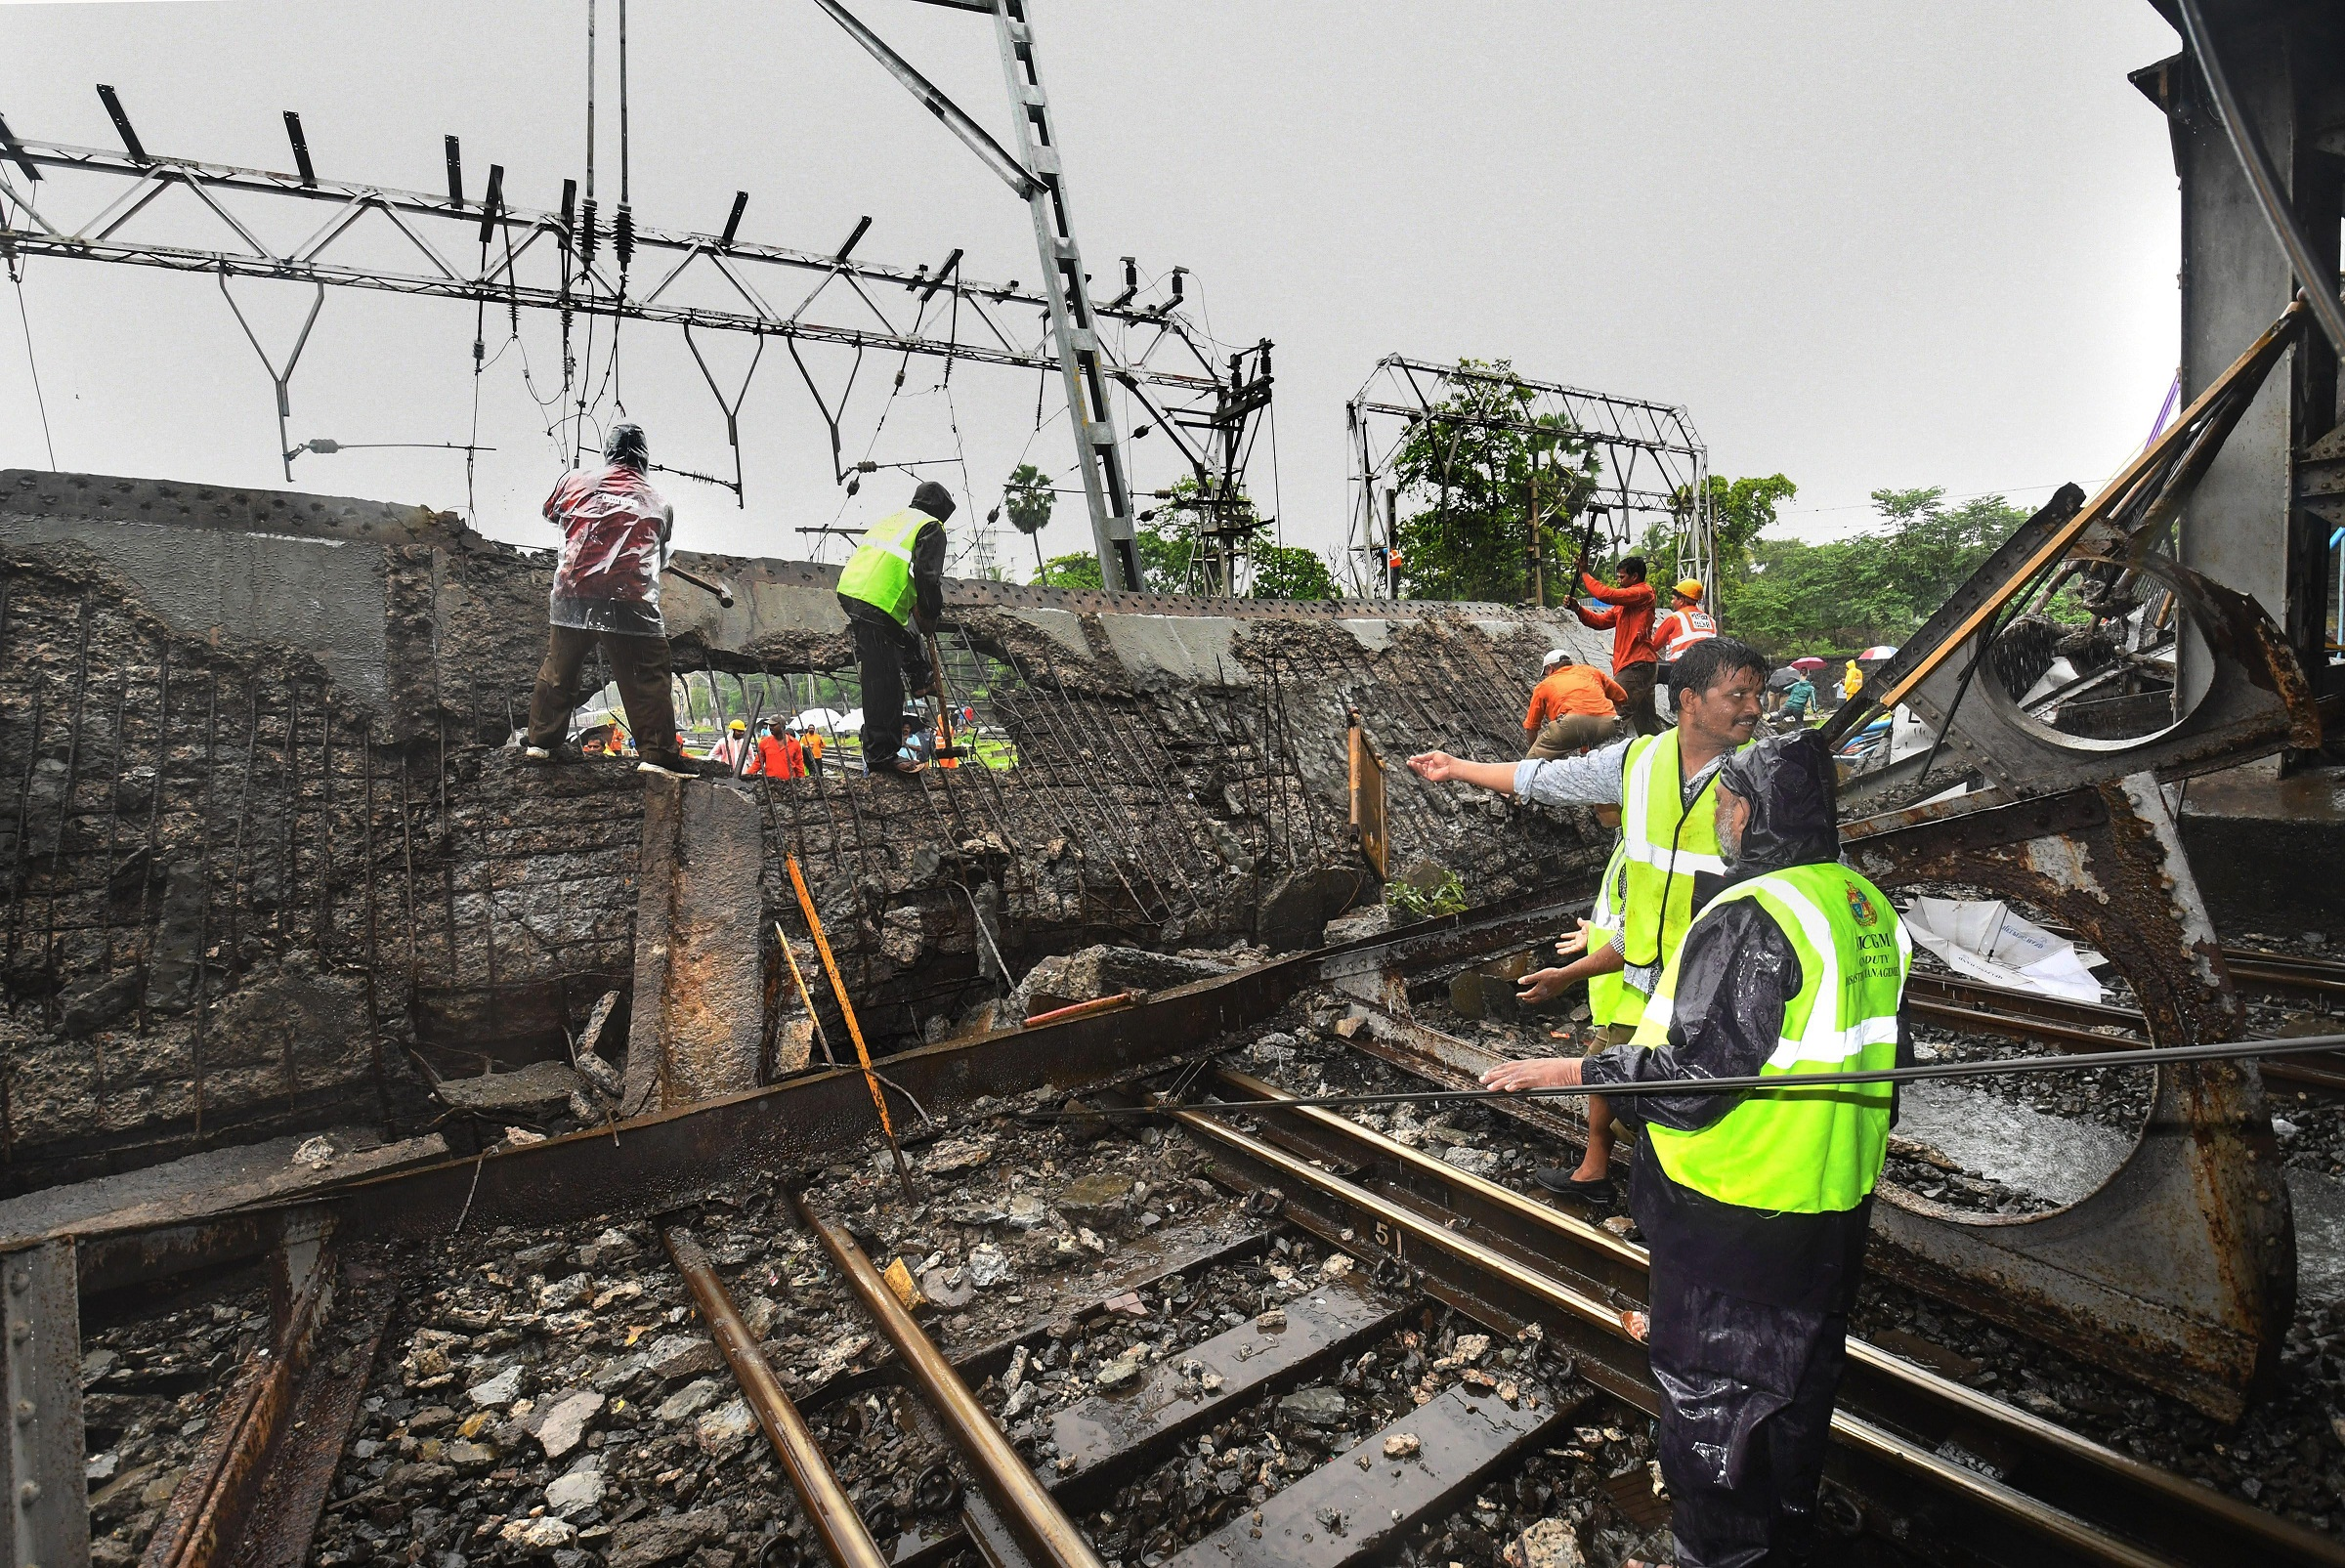 A part of the Gokhale foot overbridge that collapsed on the Western Railway tracks, at Andheri station following heavy rain, in Mumbai July 03, 2018. PTI file photo